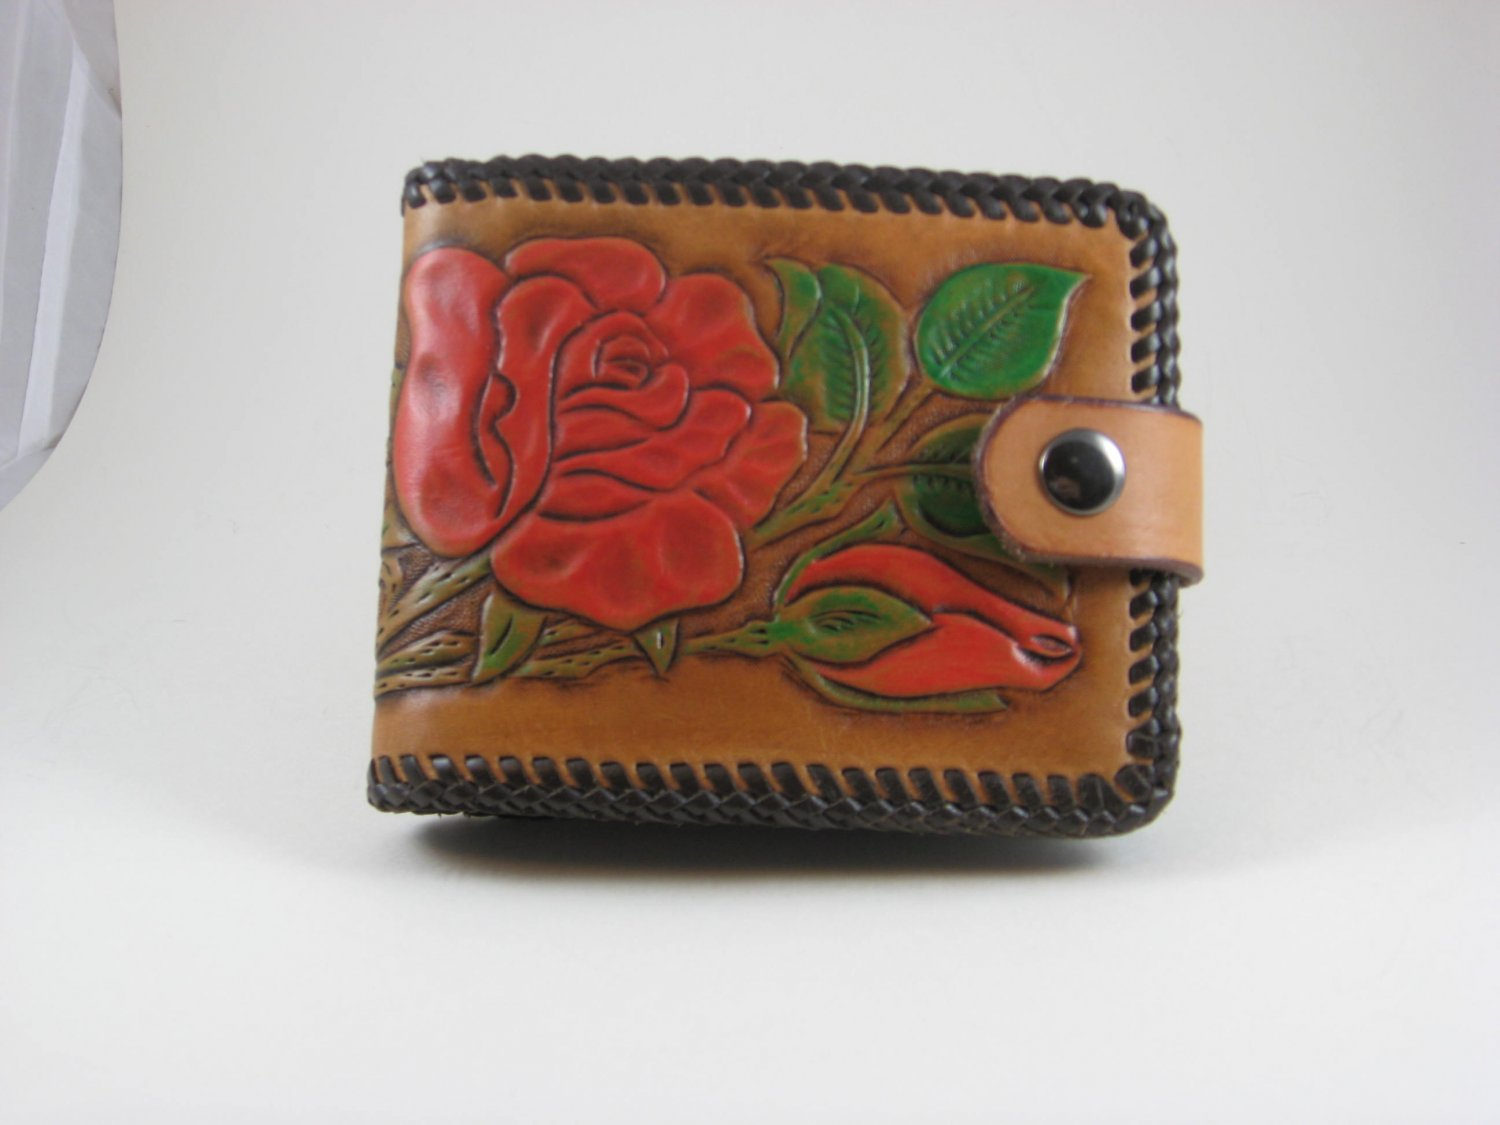 Ladies Deluxe Wallet, Chestnut Tan, Black Lacing, Handtooled Leather, Red Rose W0010